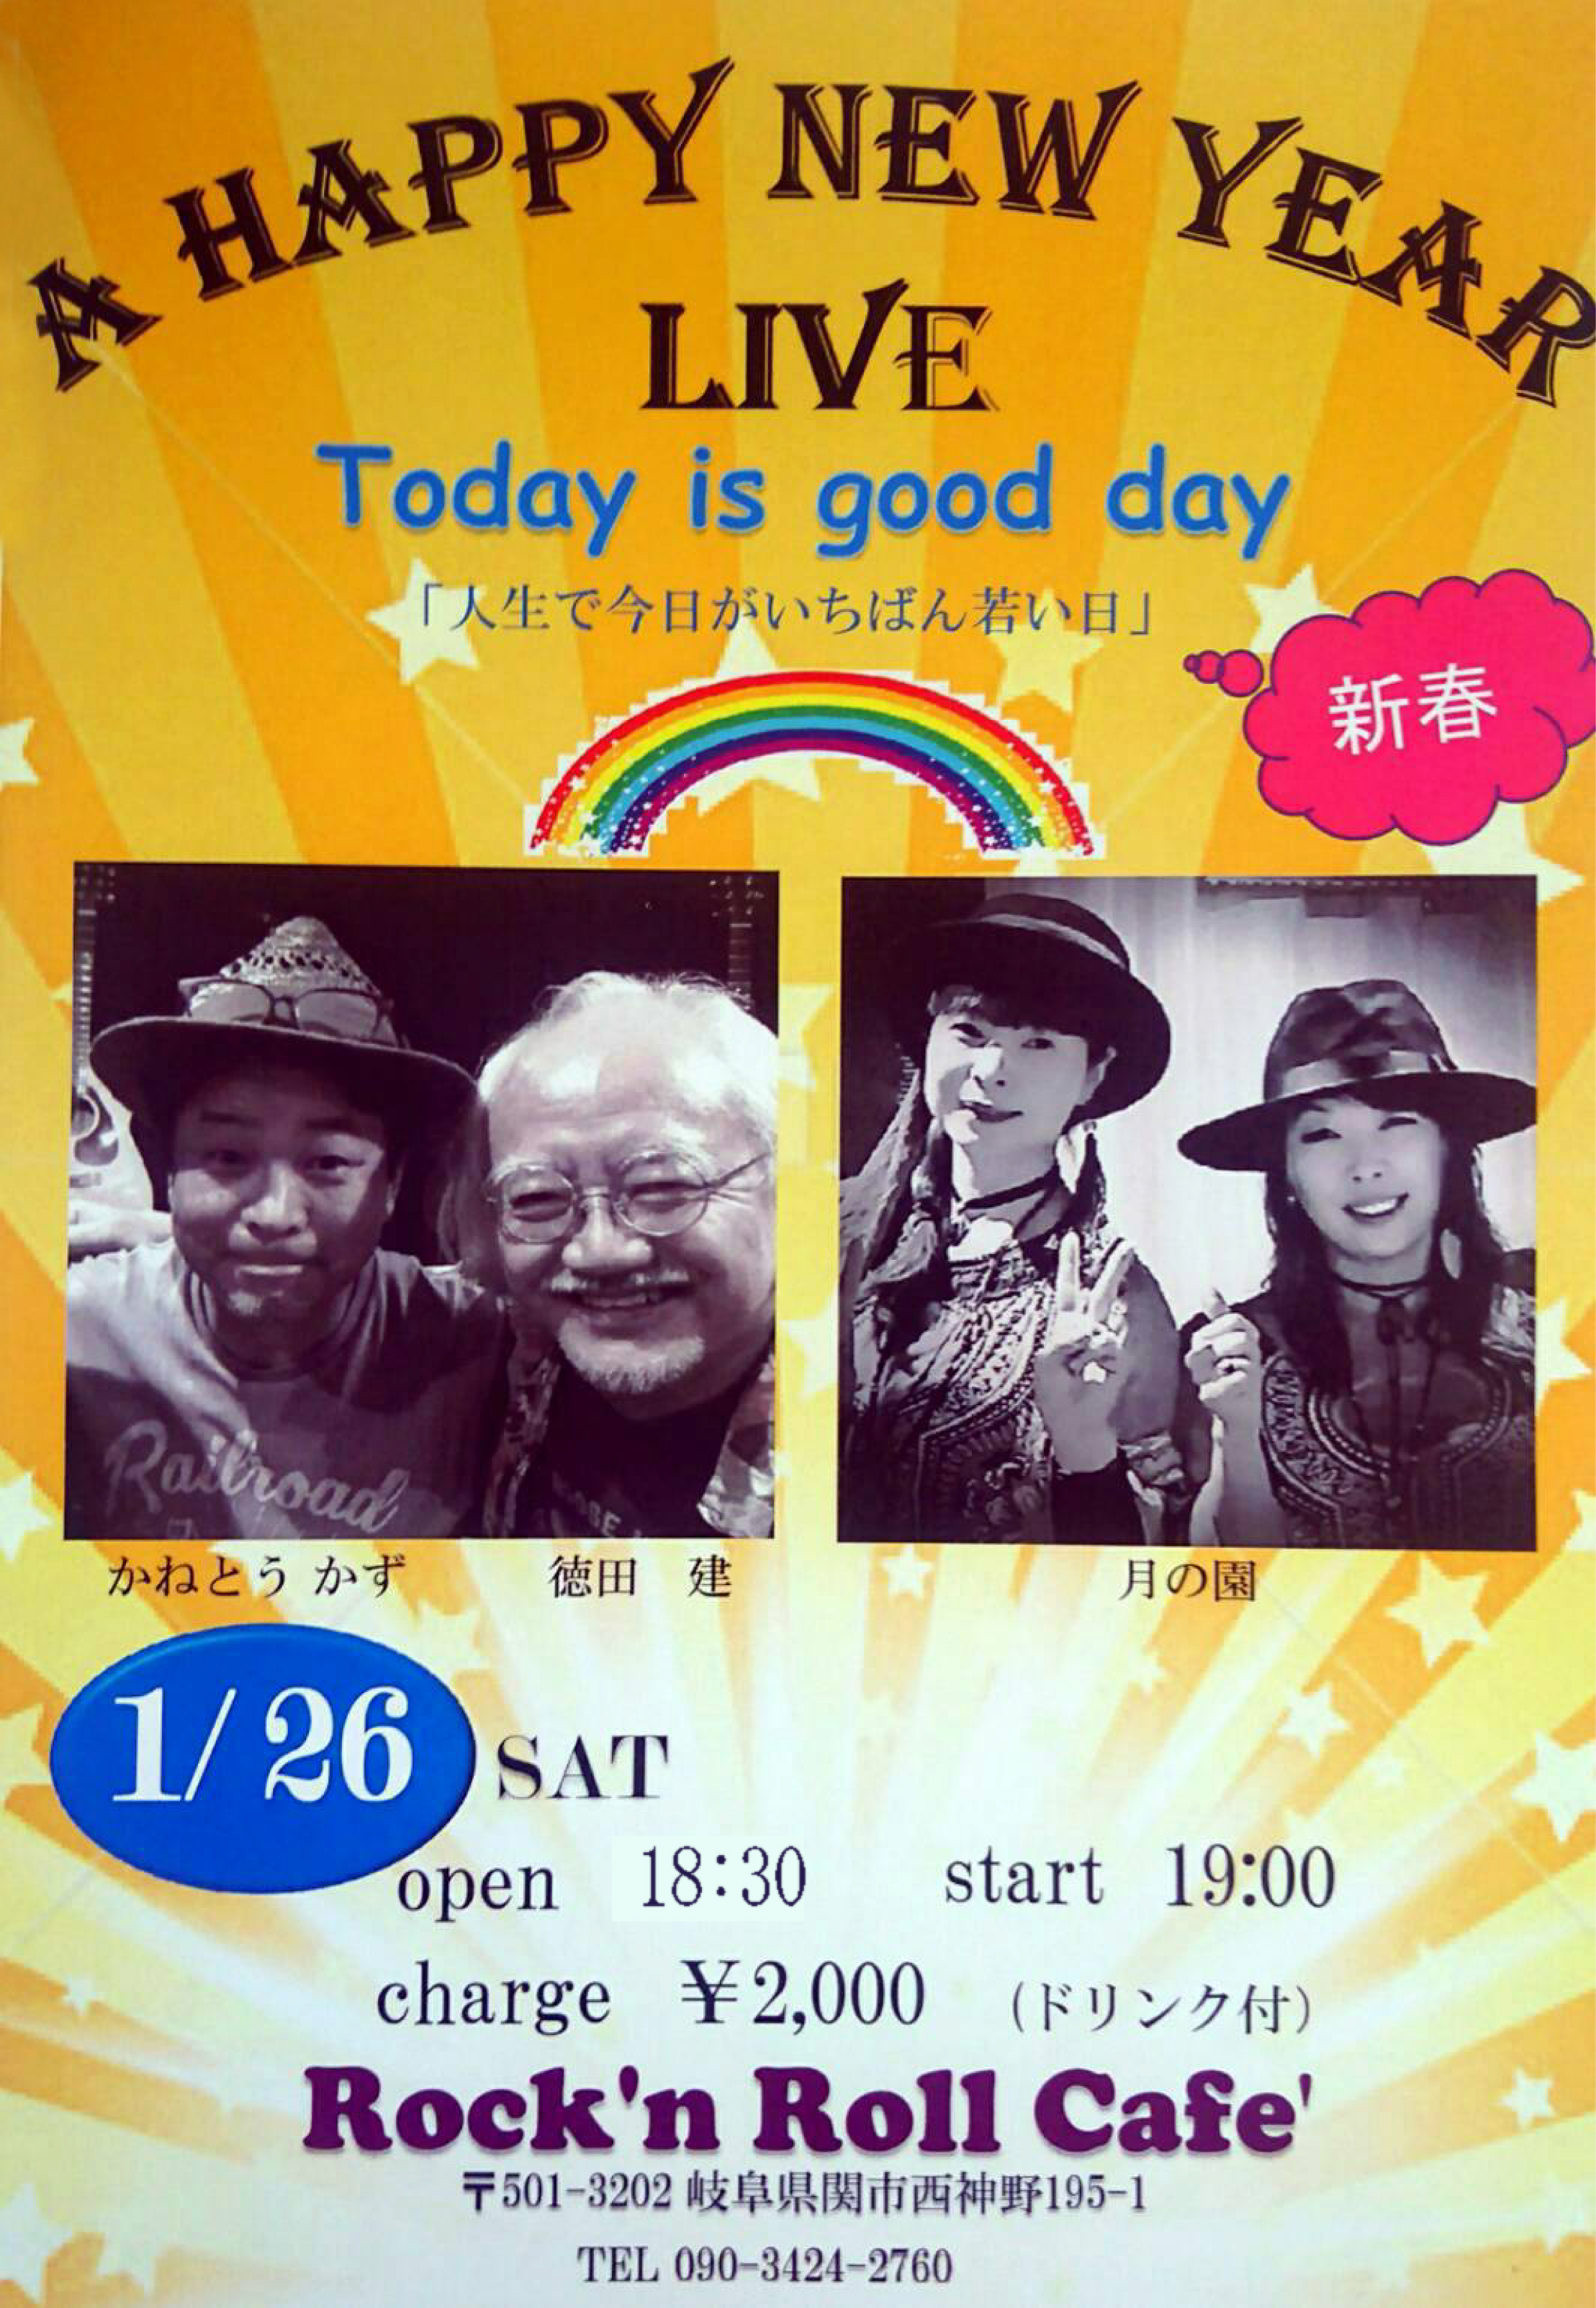 1月26日(土曜日)A HAPPY NEW YEAR LIVE Today is good day